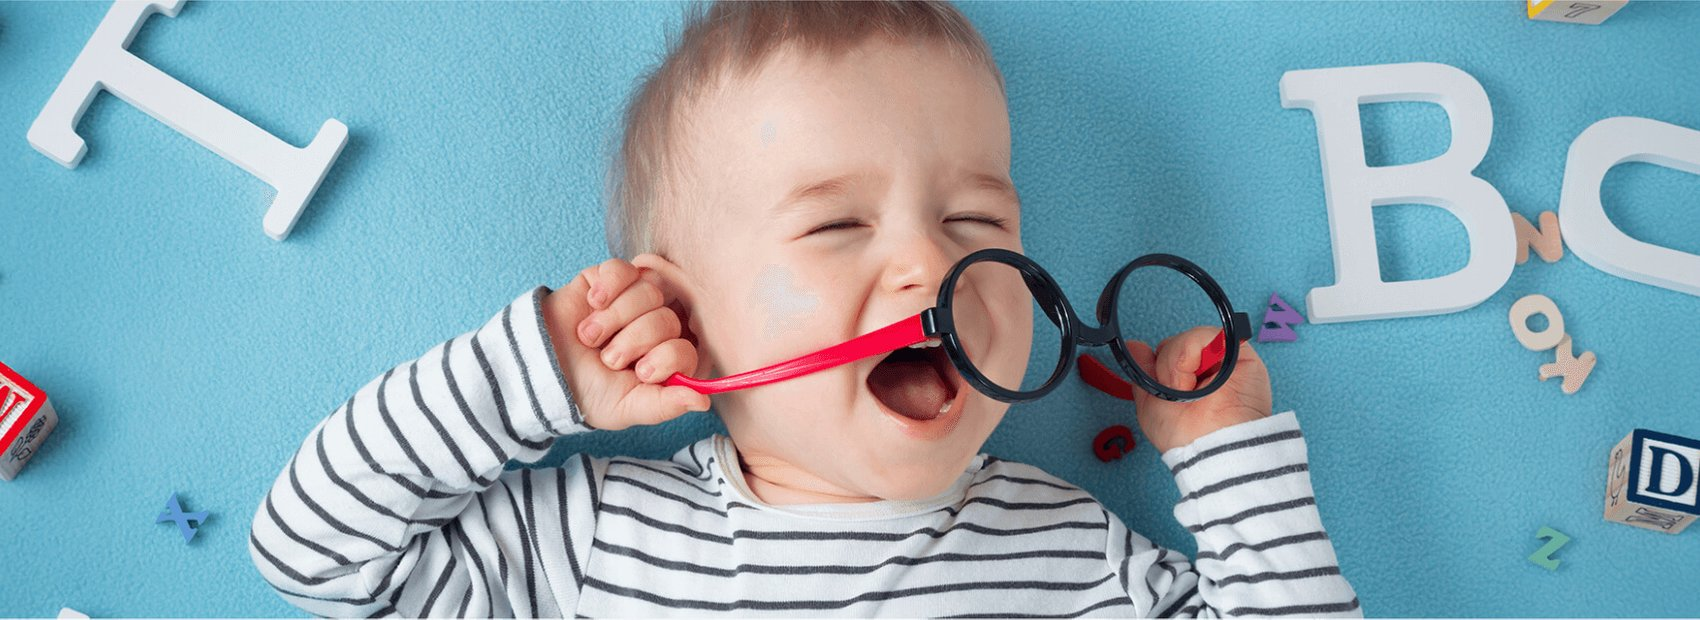 A baby laughing while holding a pair of toy glasses